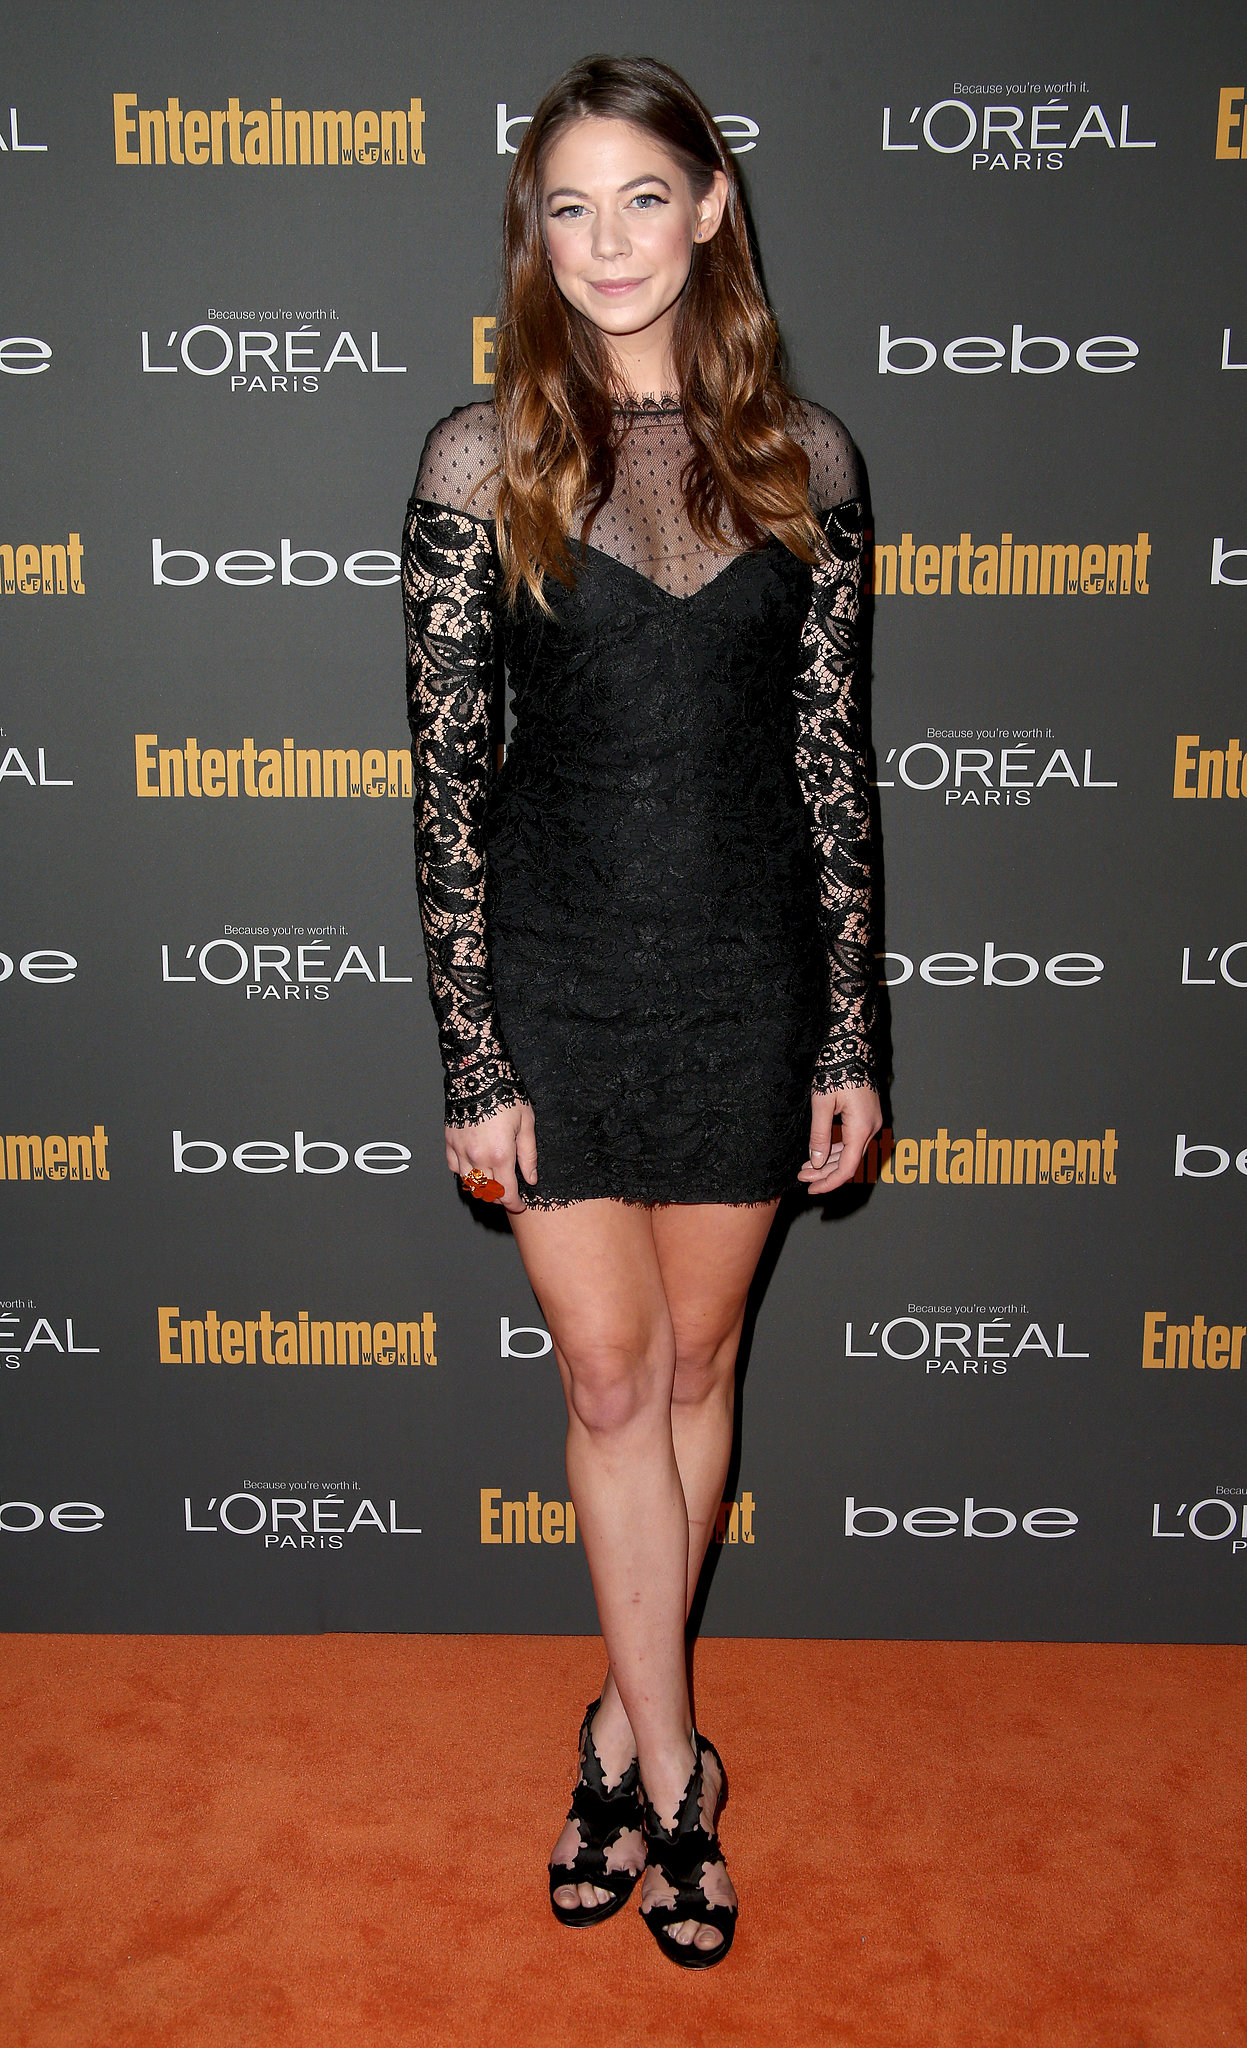 Analeigh Tipton went with a black Emilio Pucci minidress wit